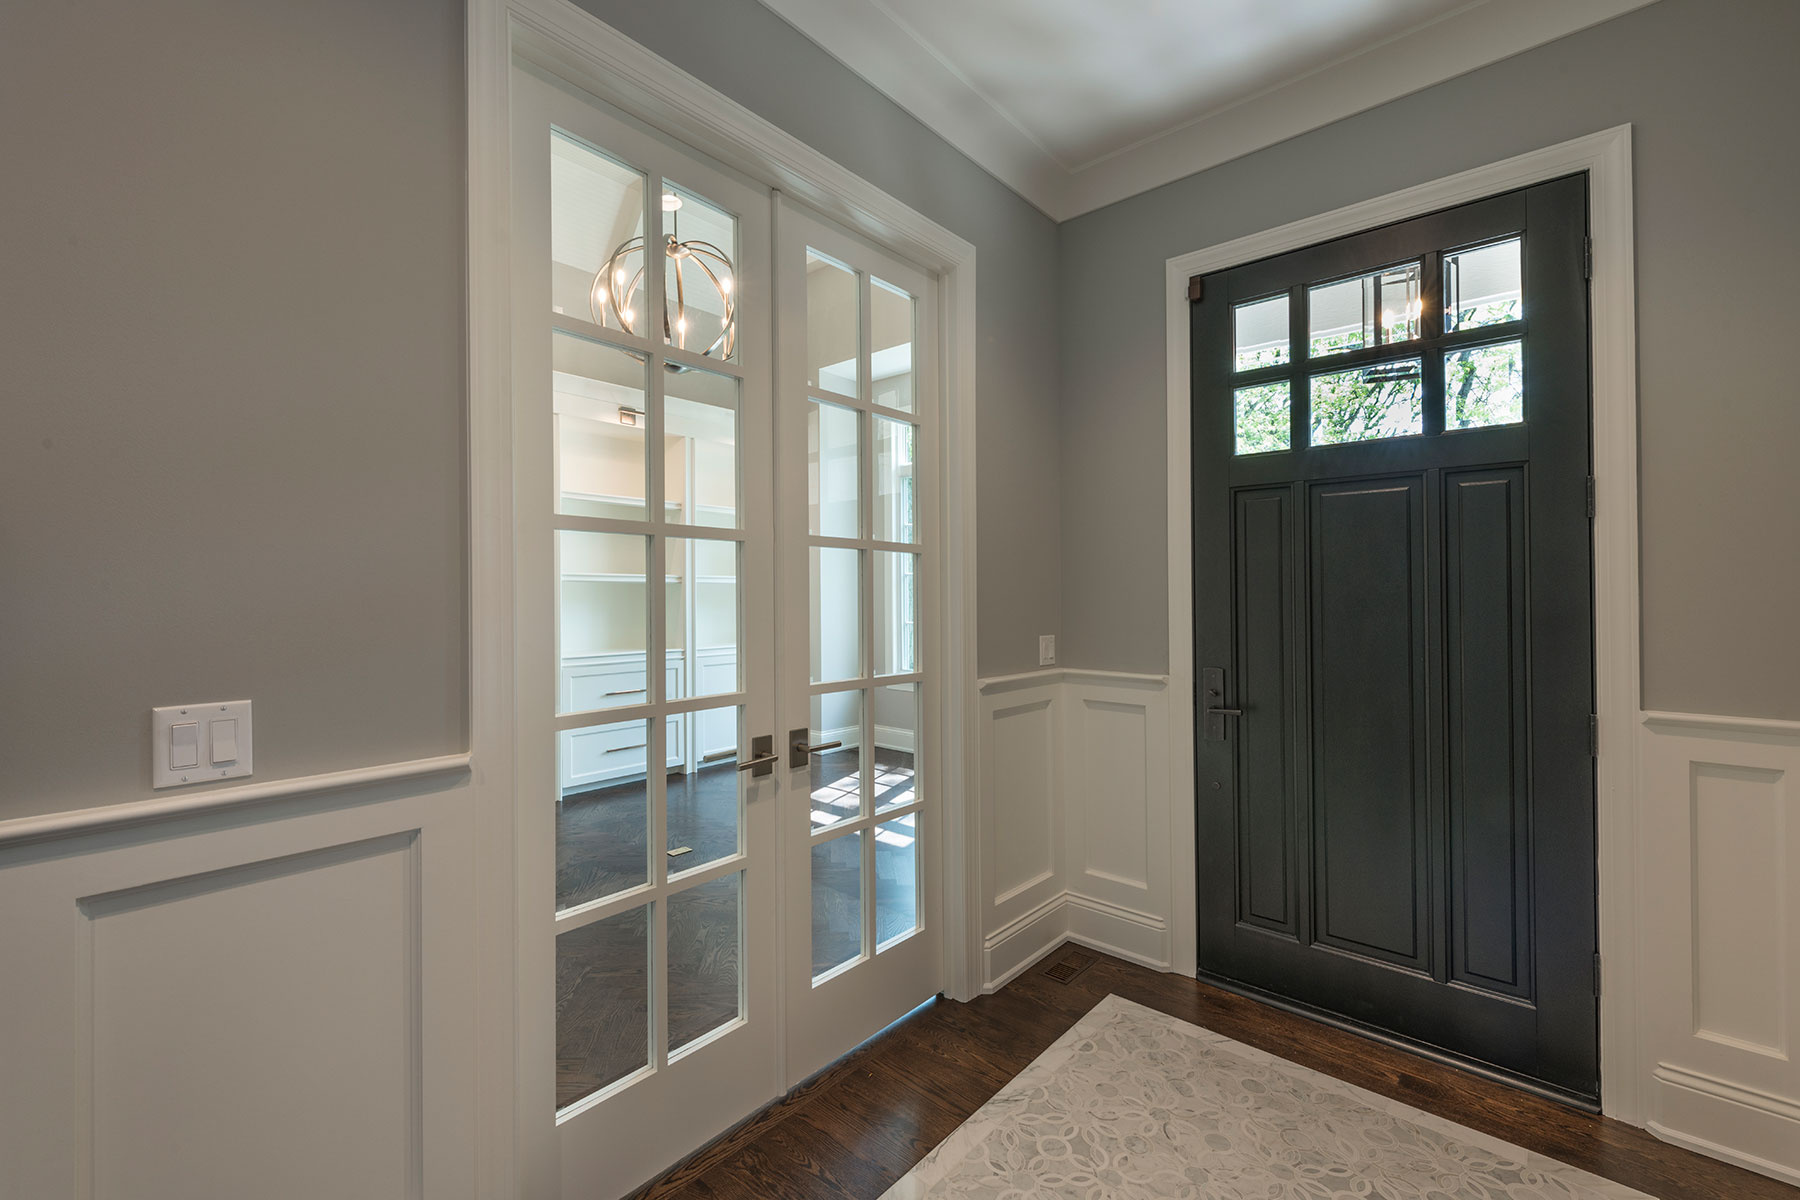 Wood Front Entry Doors in-Stock | classic style front entry door with clear glass, interior view DB-311PW 2SL - Glenview Doors - Custom Doors in Chicago